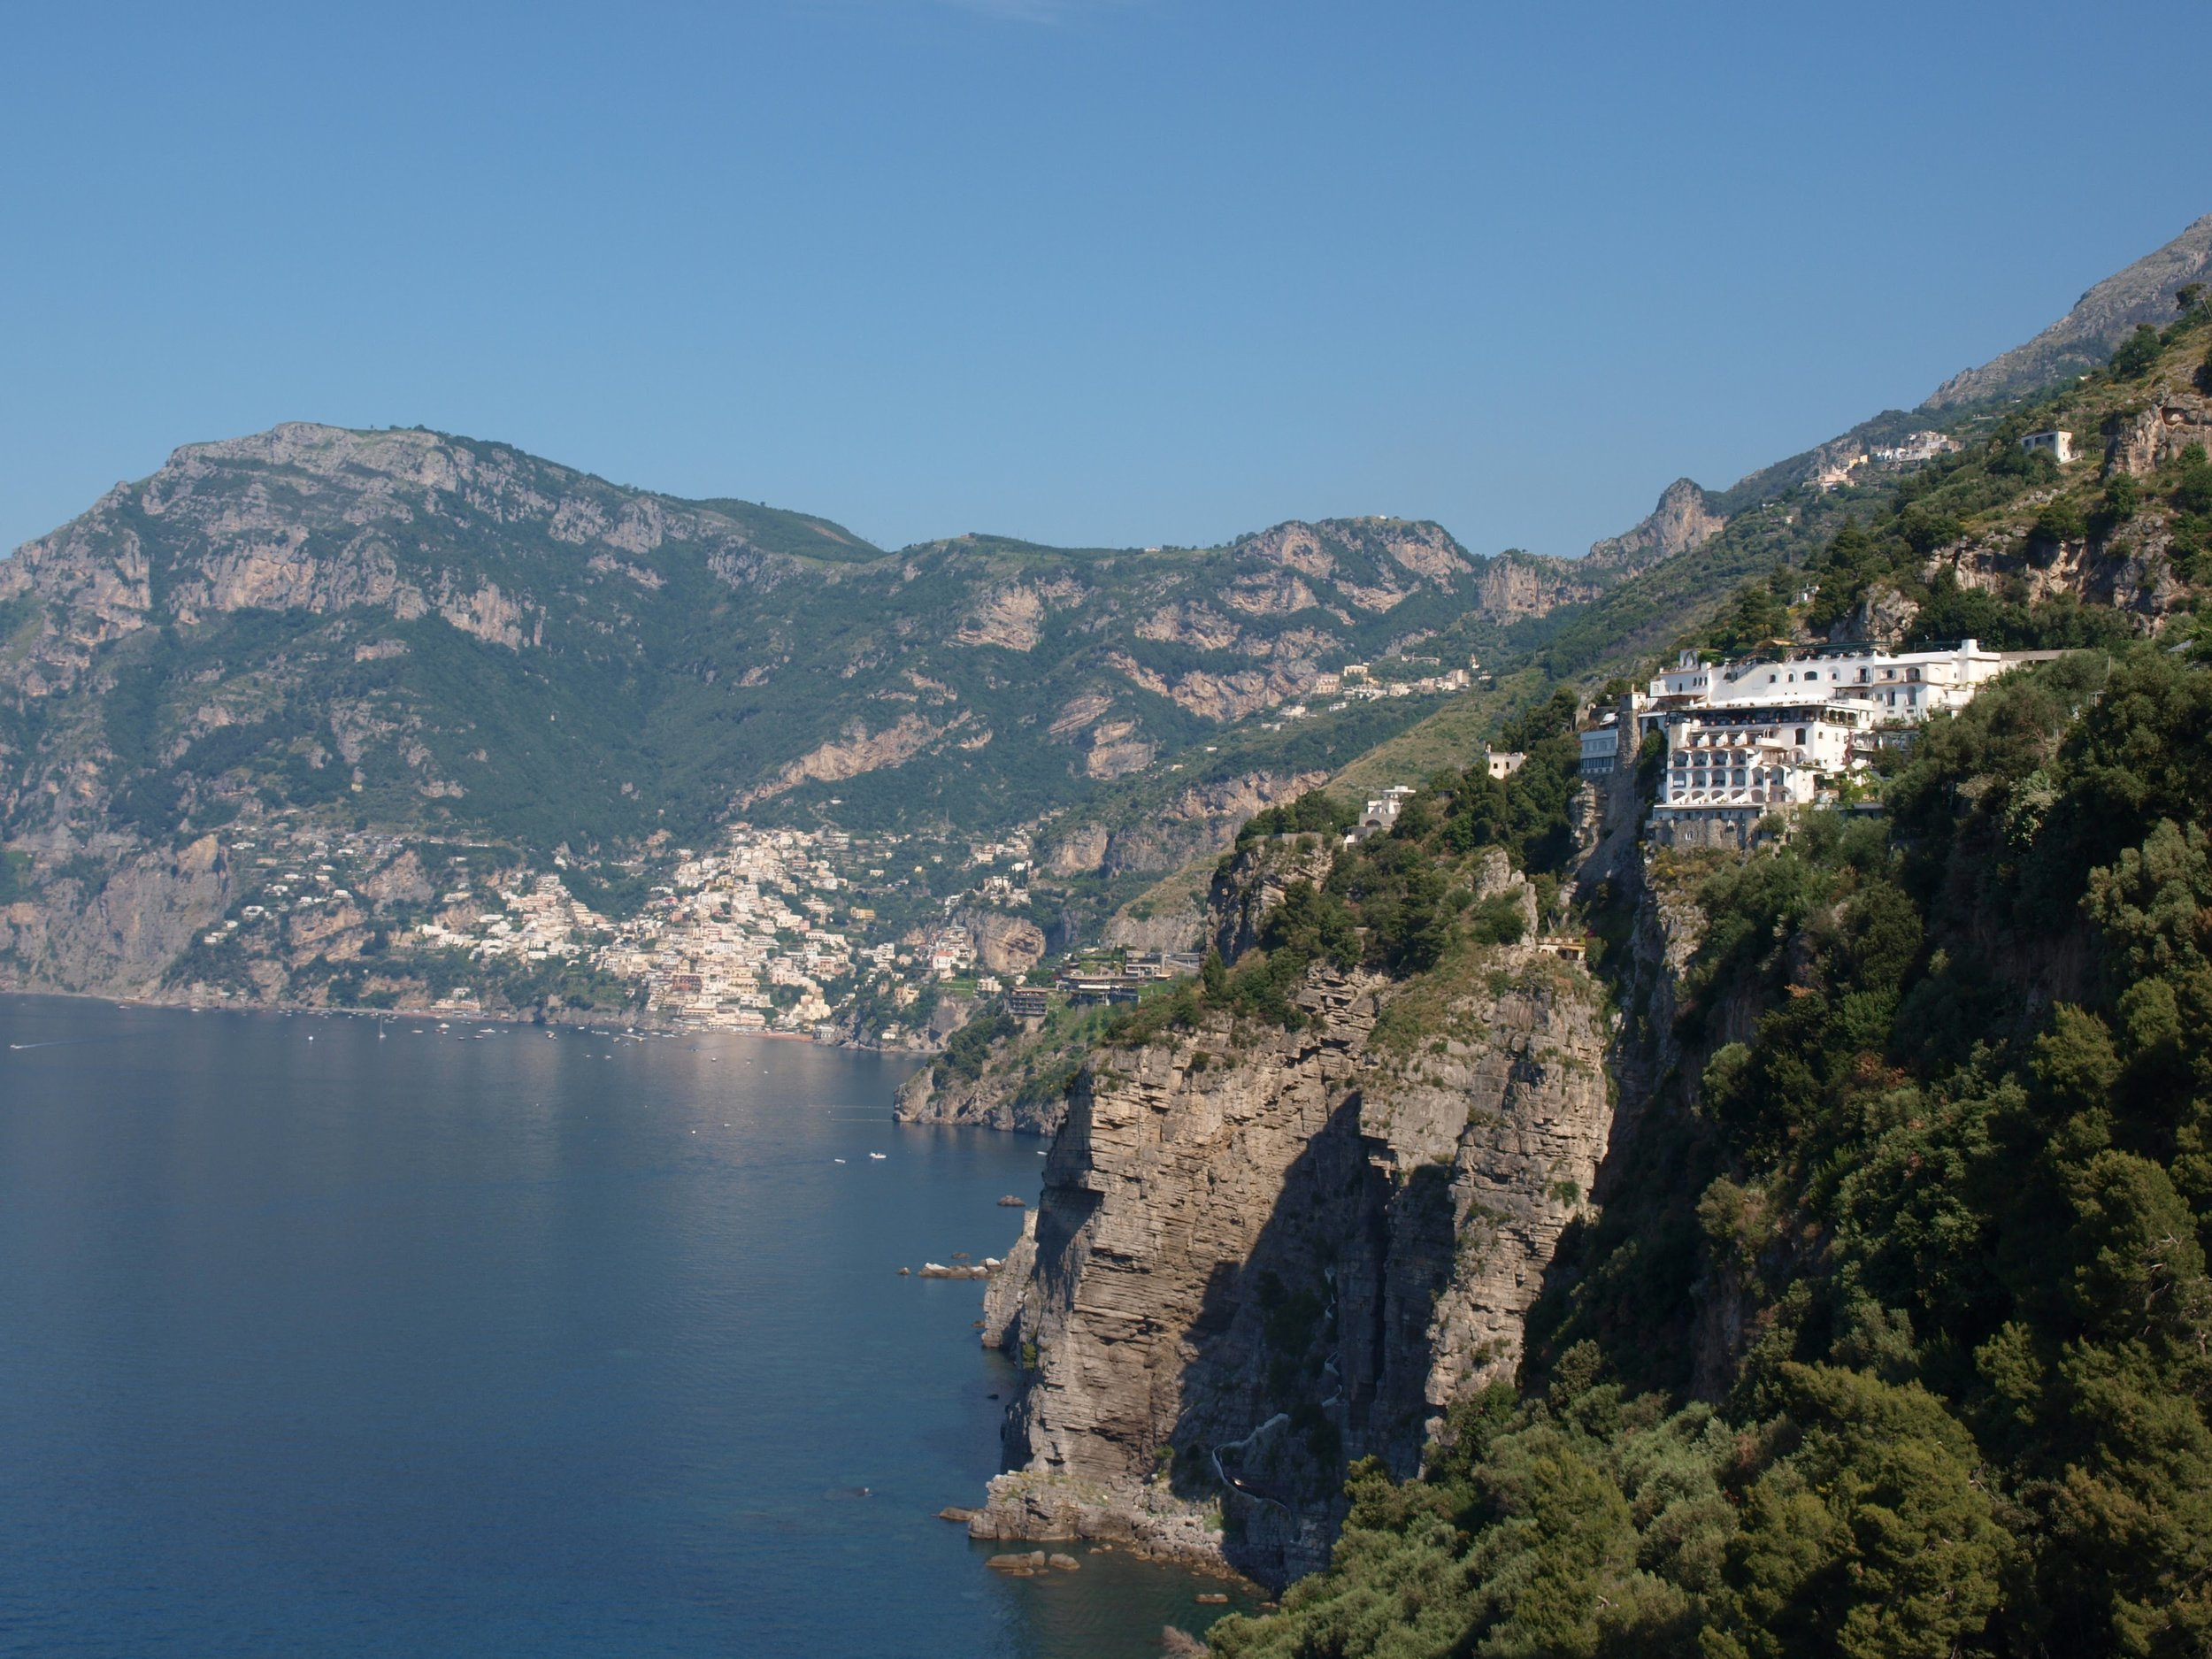 The hotel Tramonto d'Oro perched high on the cliff